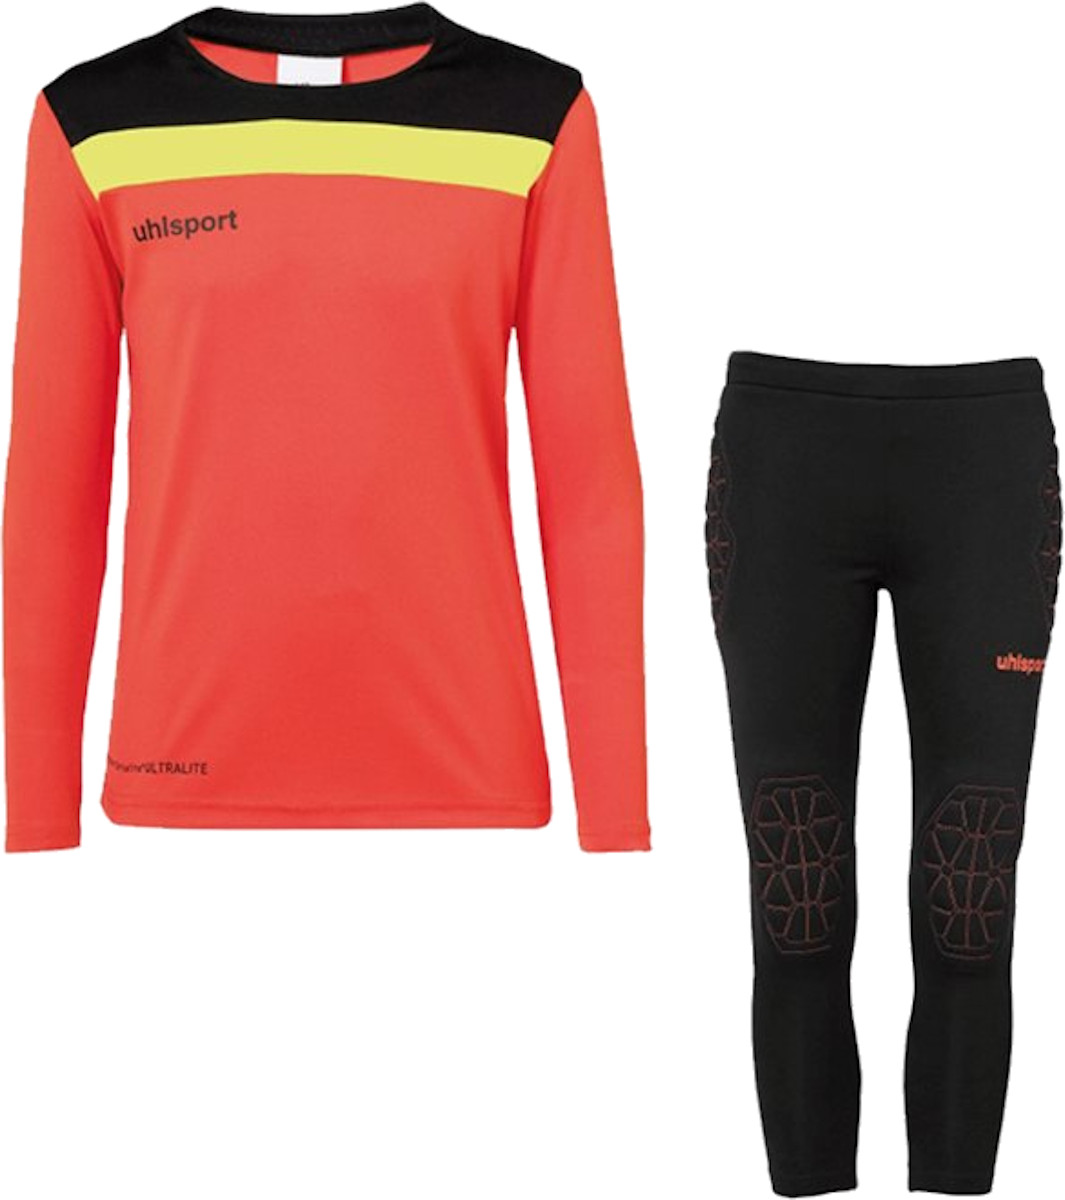 Kit Uhlsport Offense 23 GK set kids LA